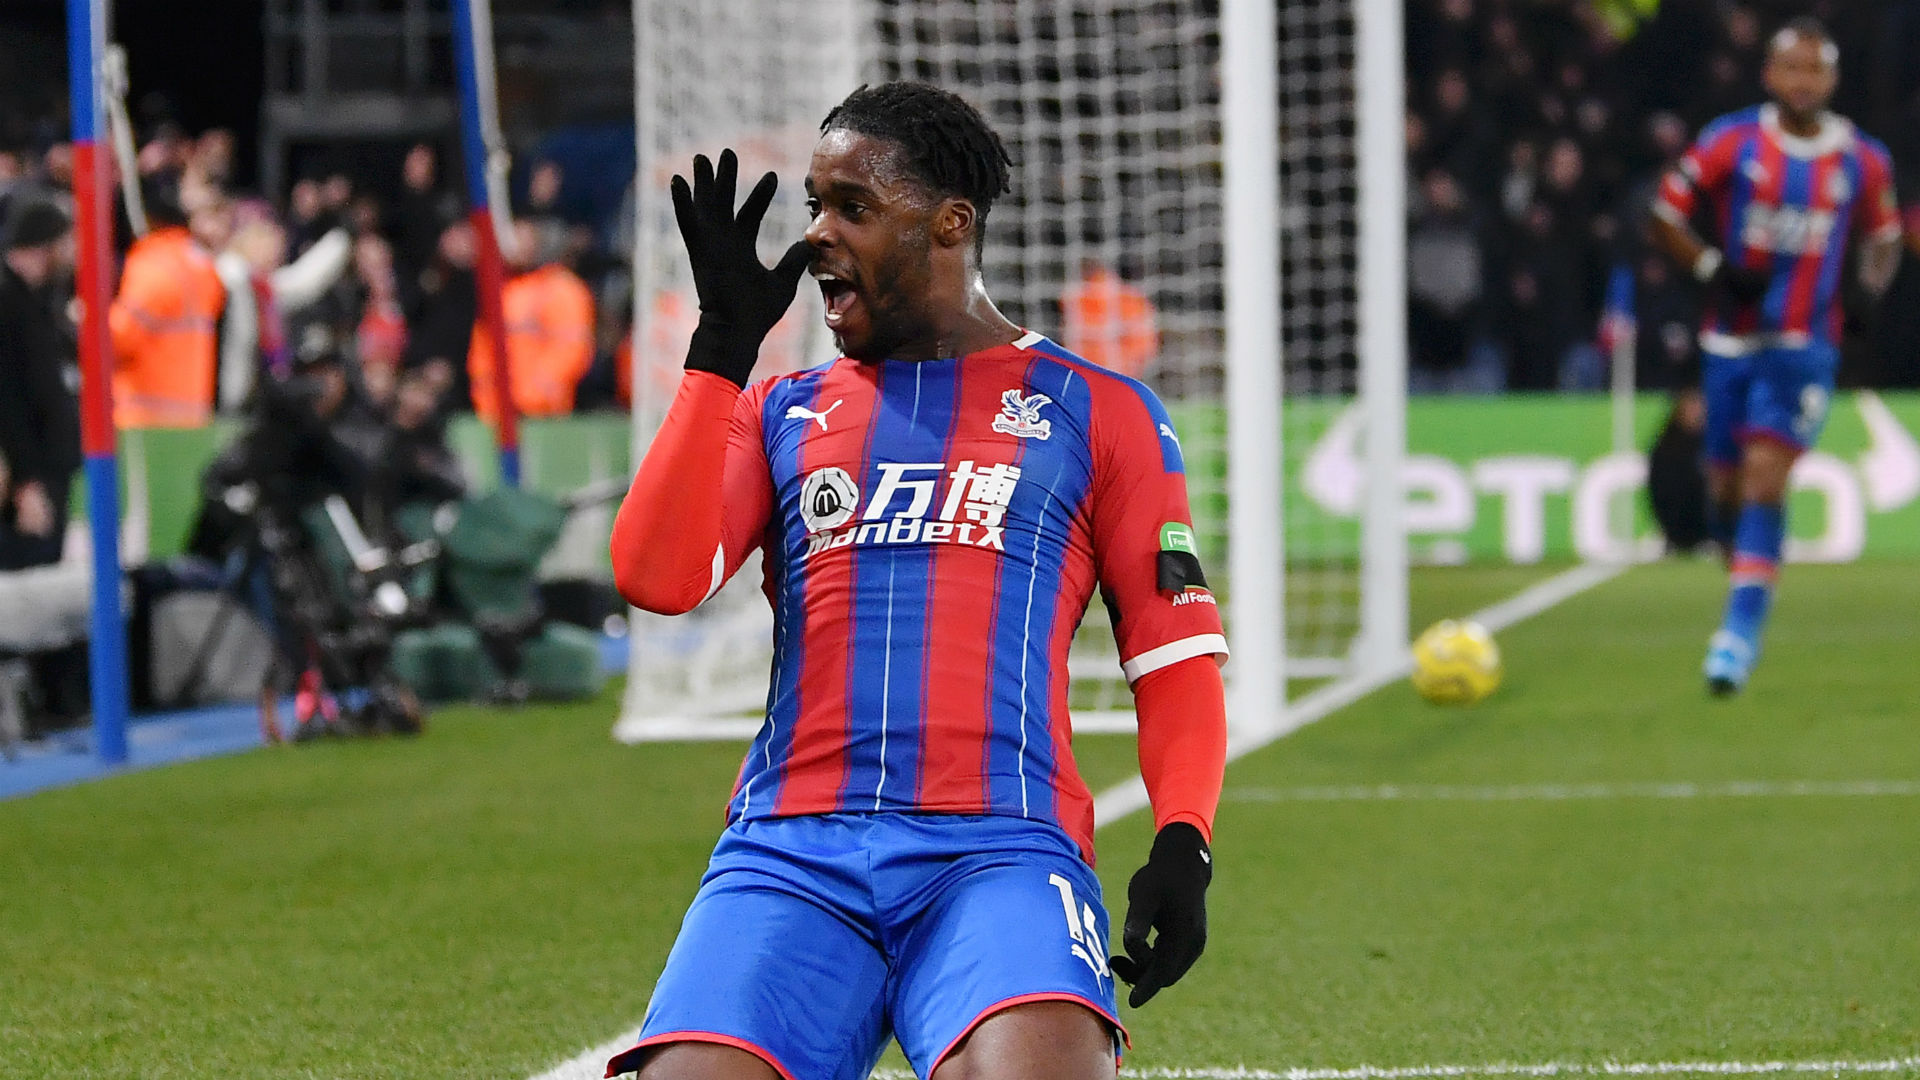 Crystal Palace moved up to fifth in the Premier League as Jeffrey Schlupp's second-half strike earned a 1-0 win over struggling Bournemouth.